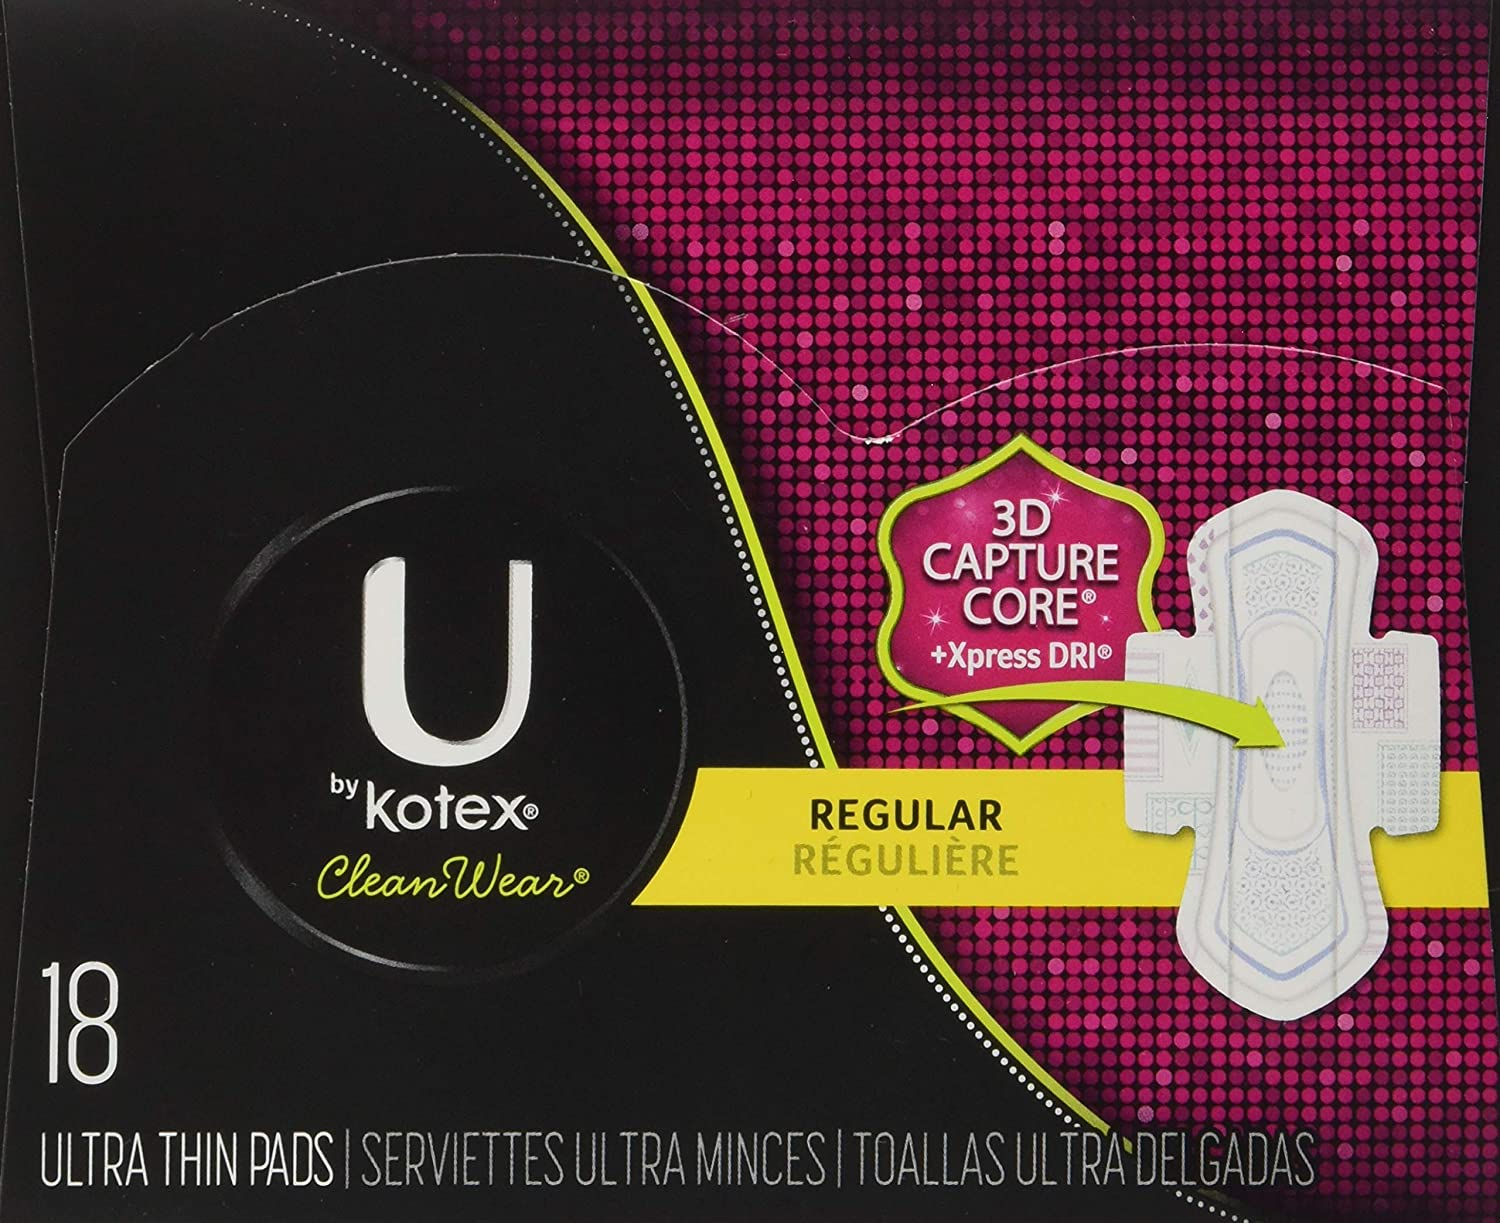 Amazon.com: Kotex U Clean Wear Ultra Thin Pads with Wings, Regular, 18 Count: Prime Pantry